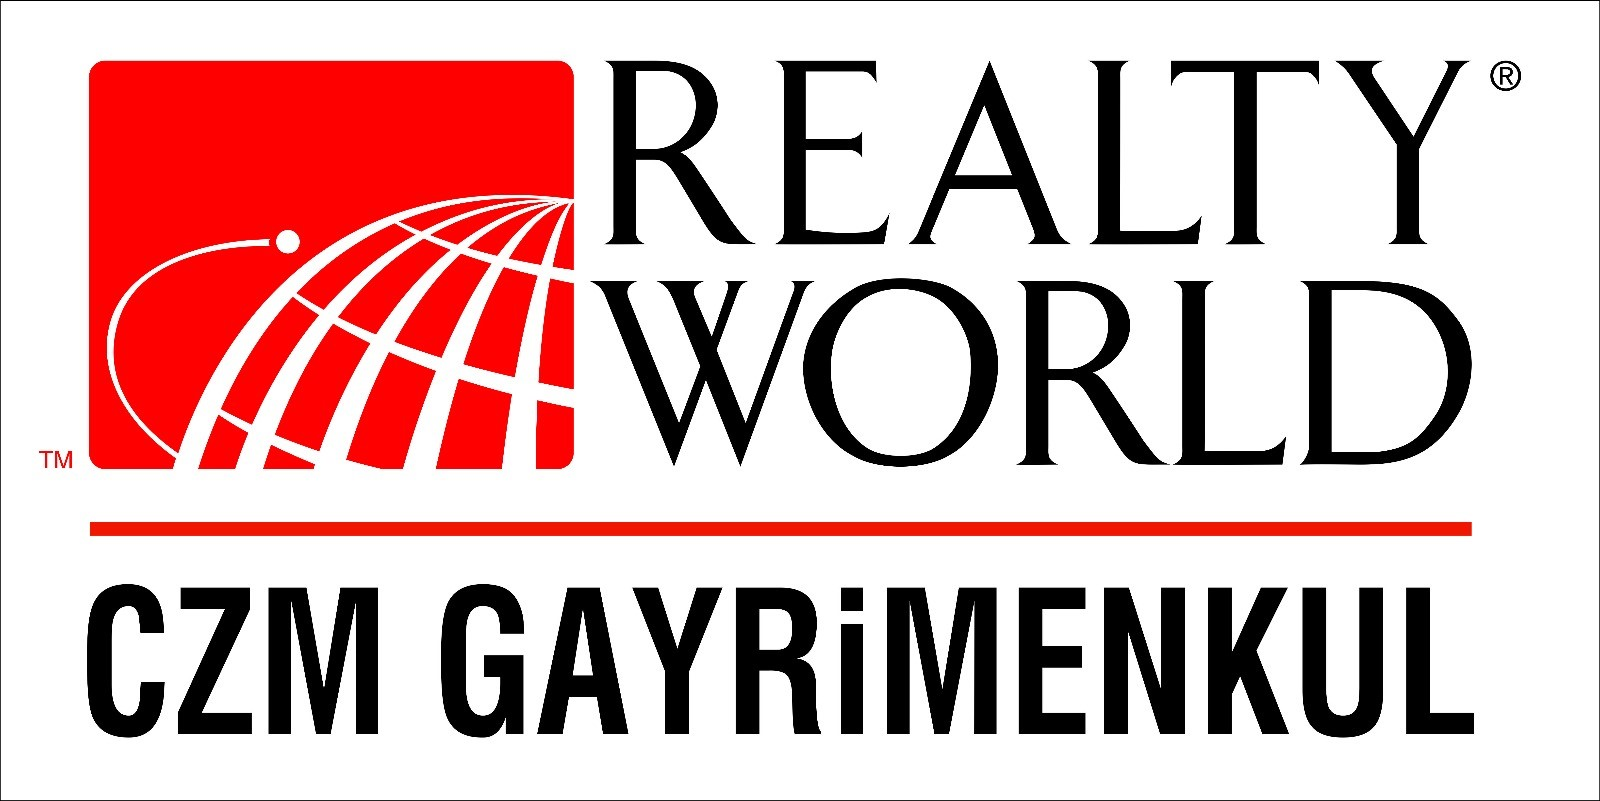 Realty World Czm